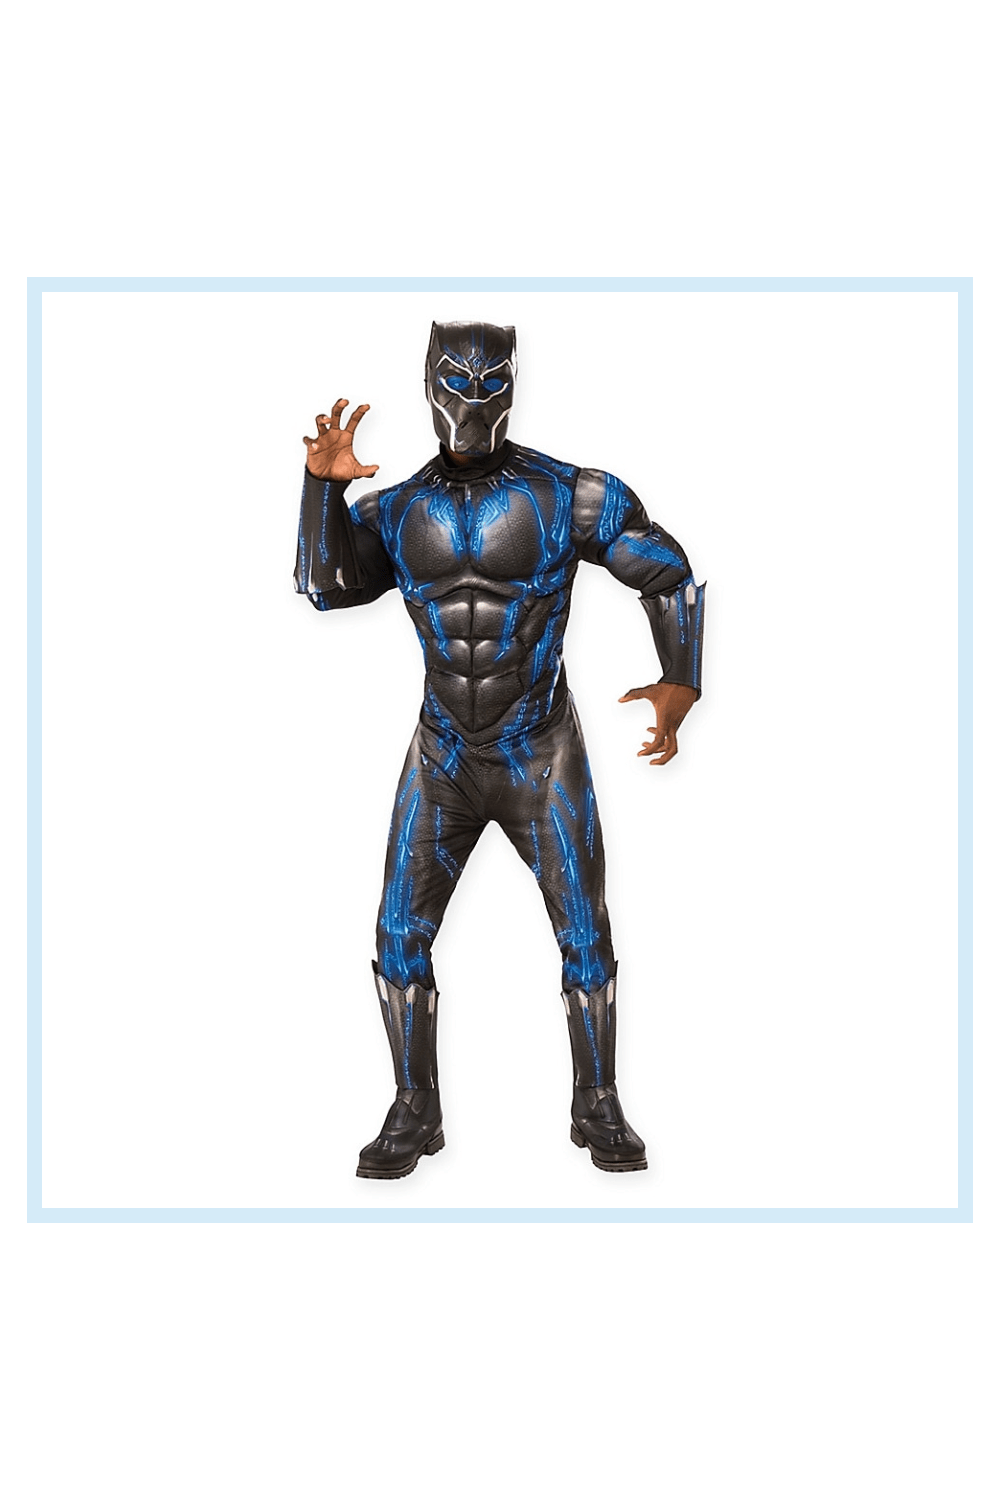 Marvel Black Panther Movie 3 Piece Multicolor Black Panther Battle Costume Bed Bath And Beyond Canada Black Panther Costume Black Panther Marvel Black Panther Halloween Costume